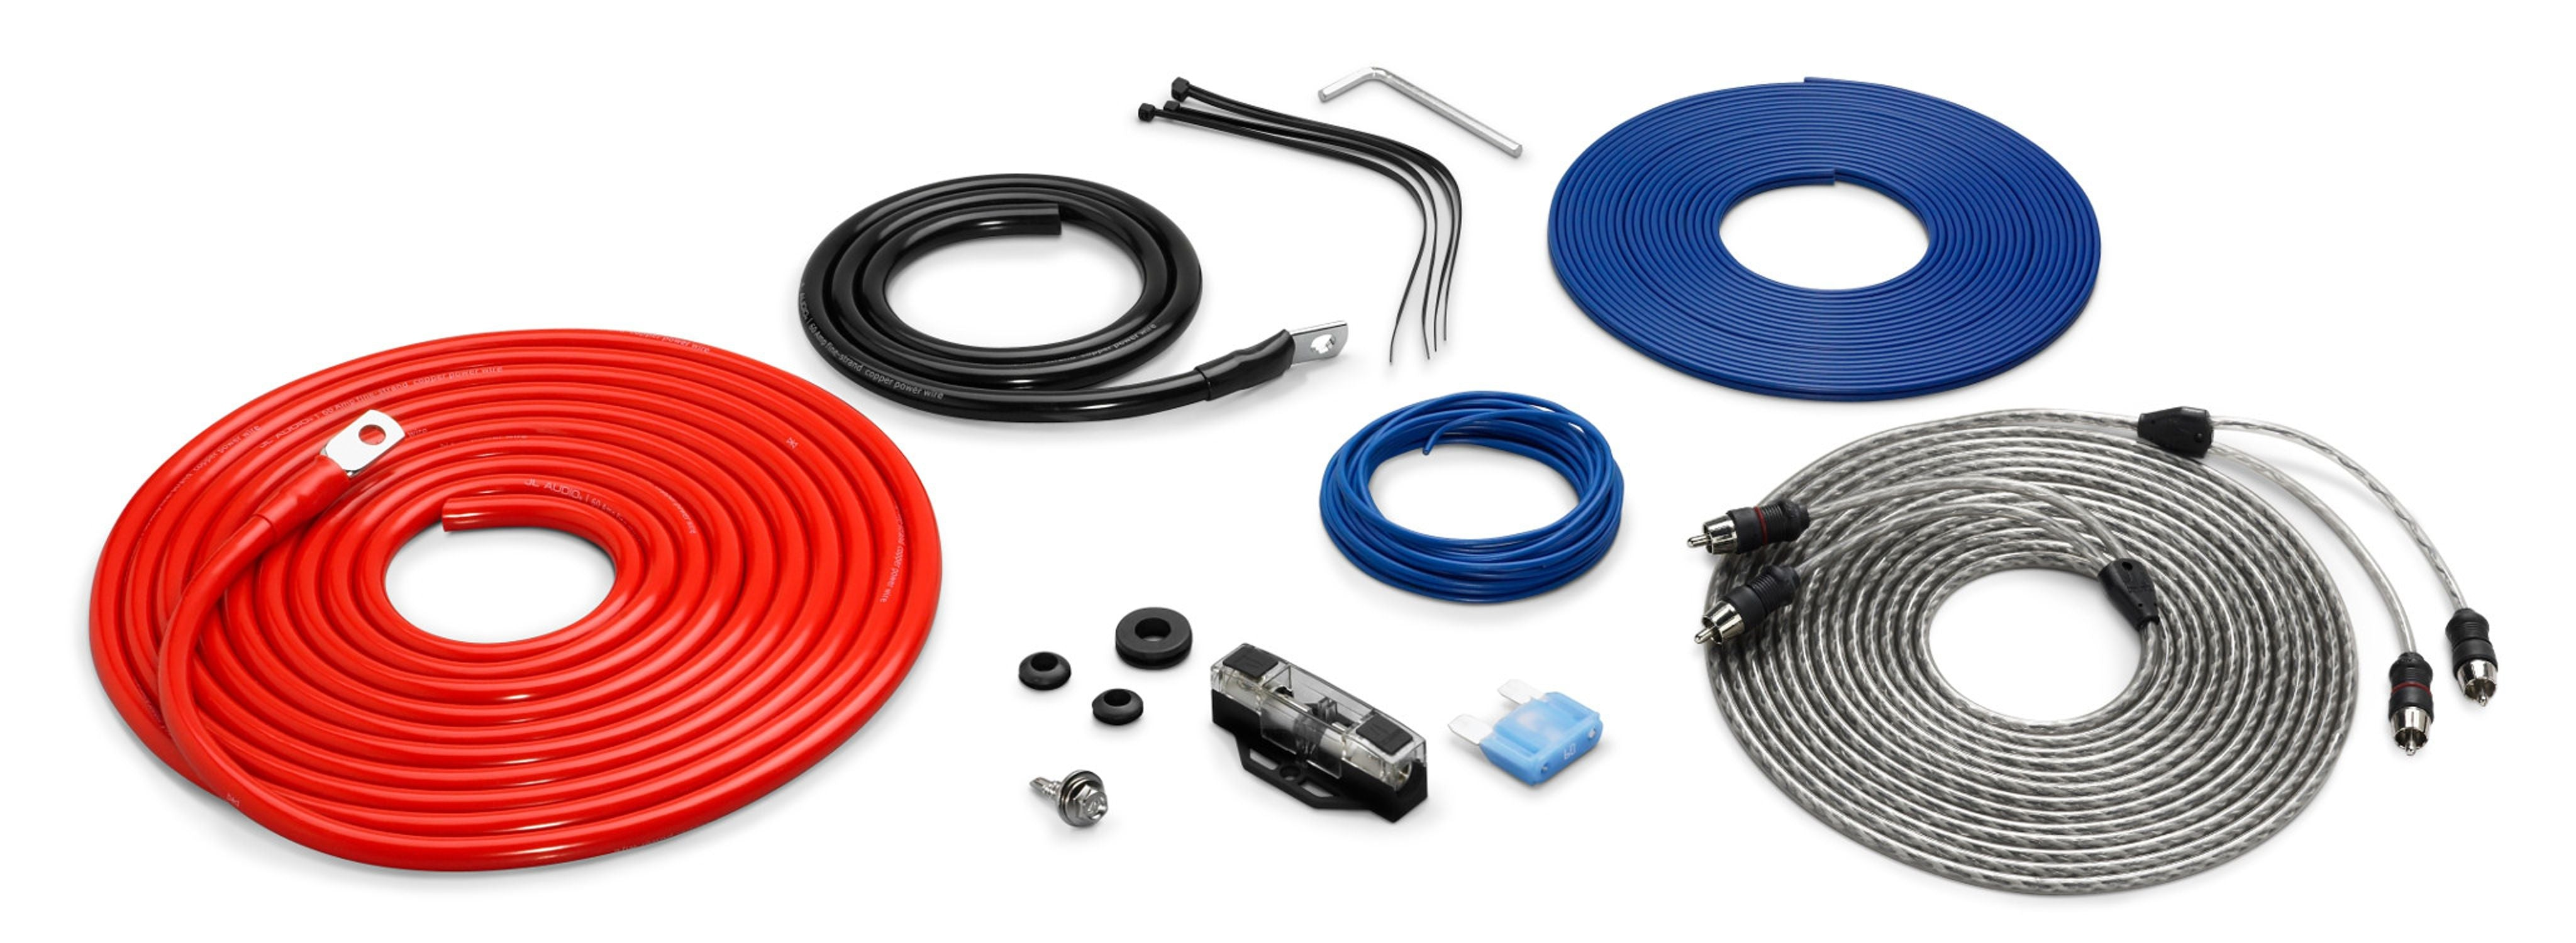 XD-ACS60 - Car Audio - Power Connections - Amplifier Connection Kits - JL  AudioJL Audio